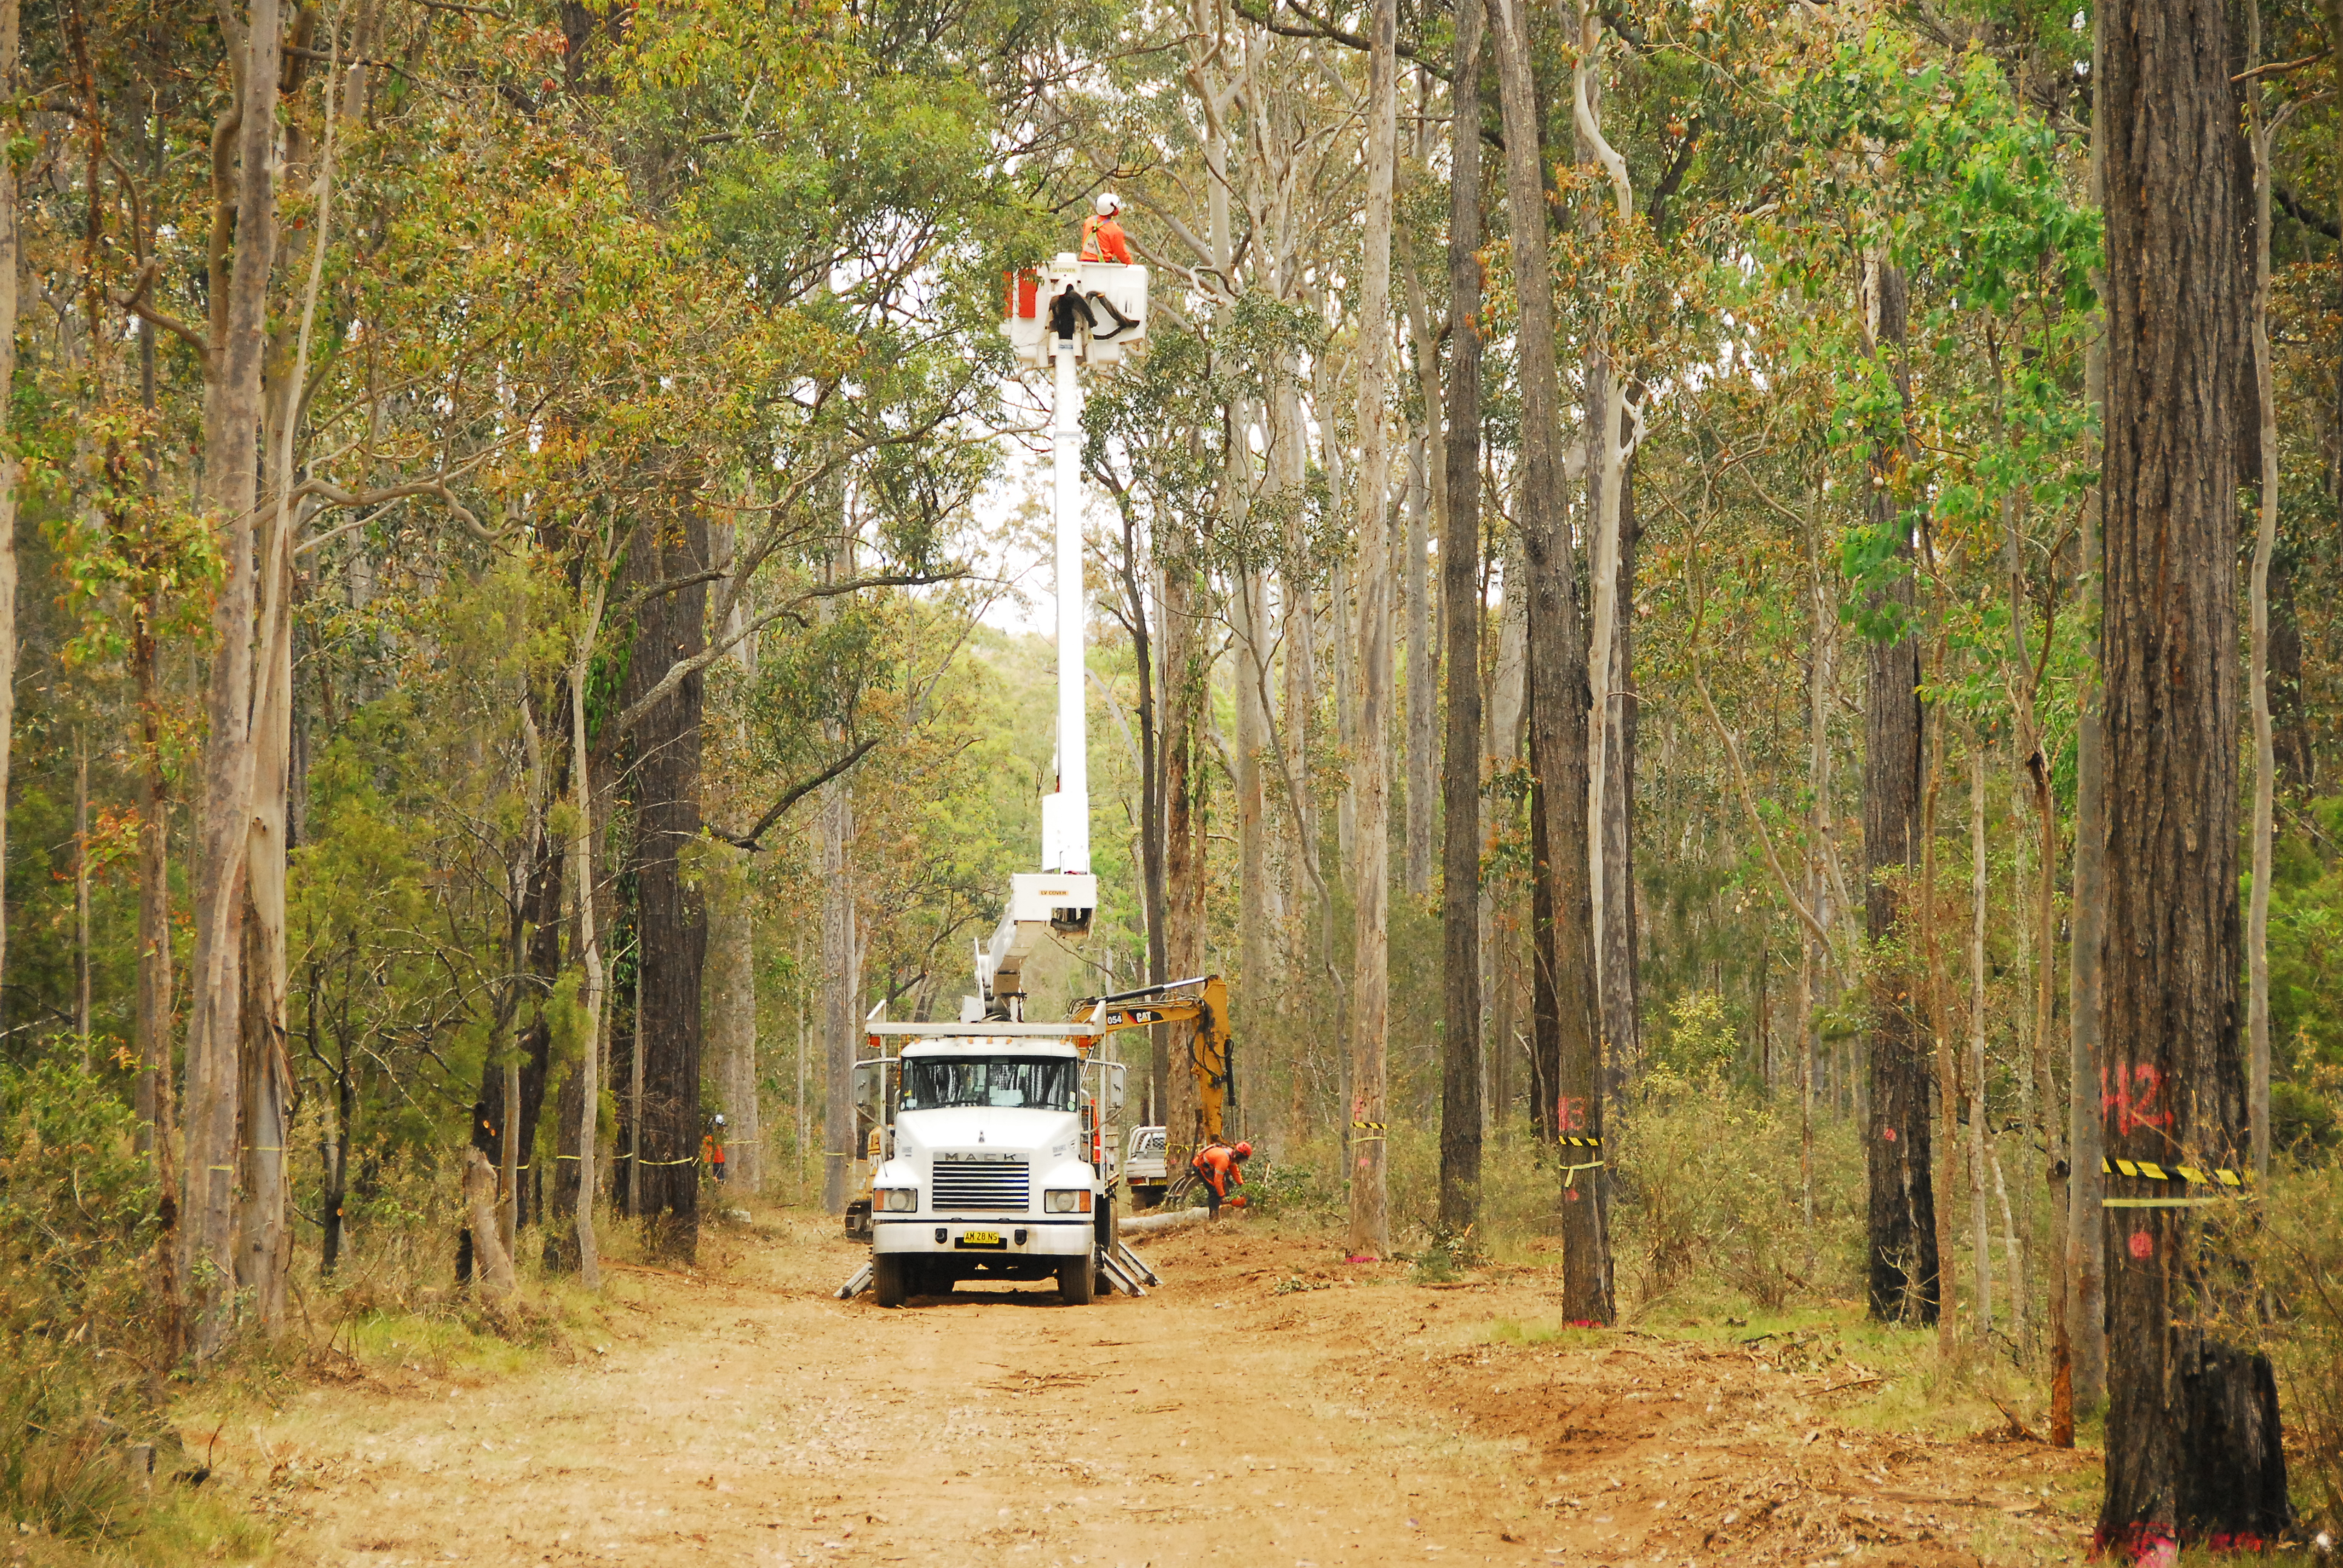 Cleared road in bushland with truck in distance, with man on extendable platform at tree top level.